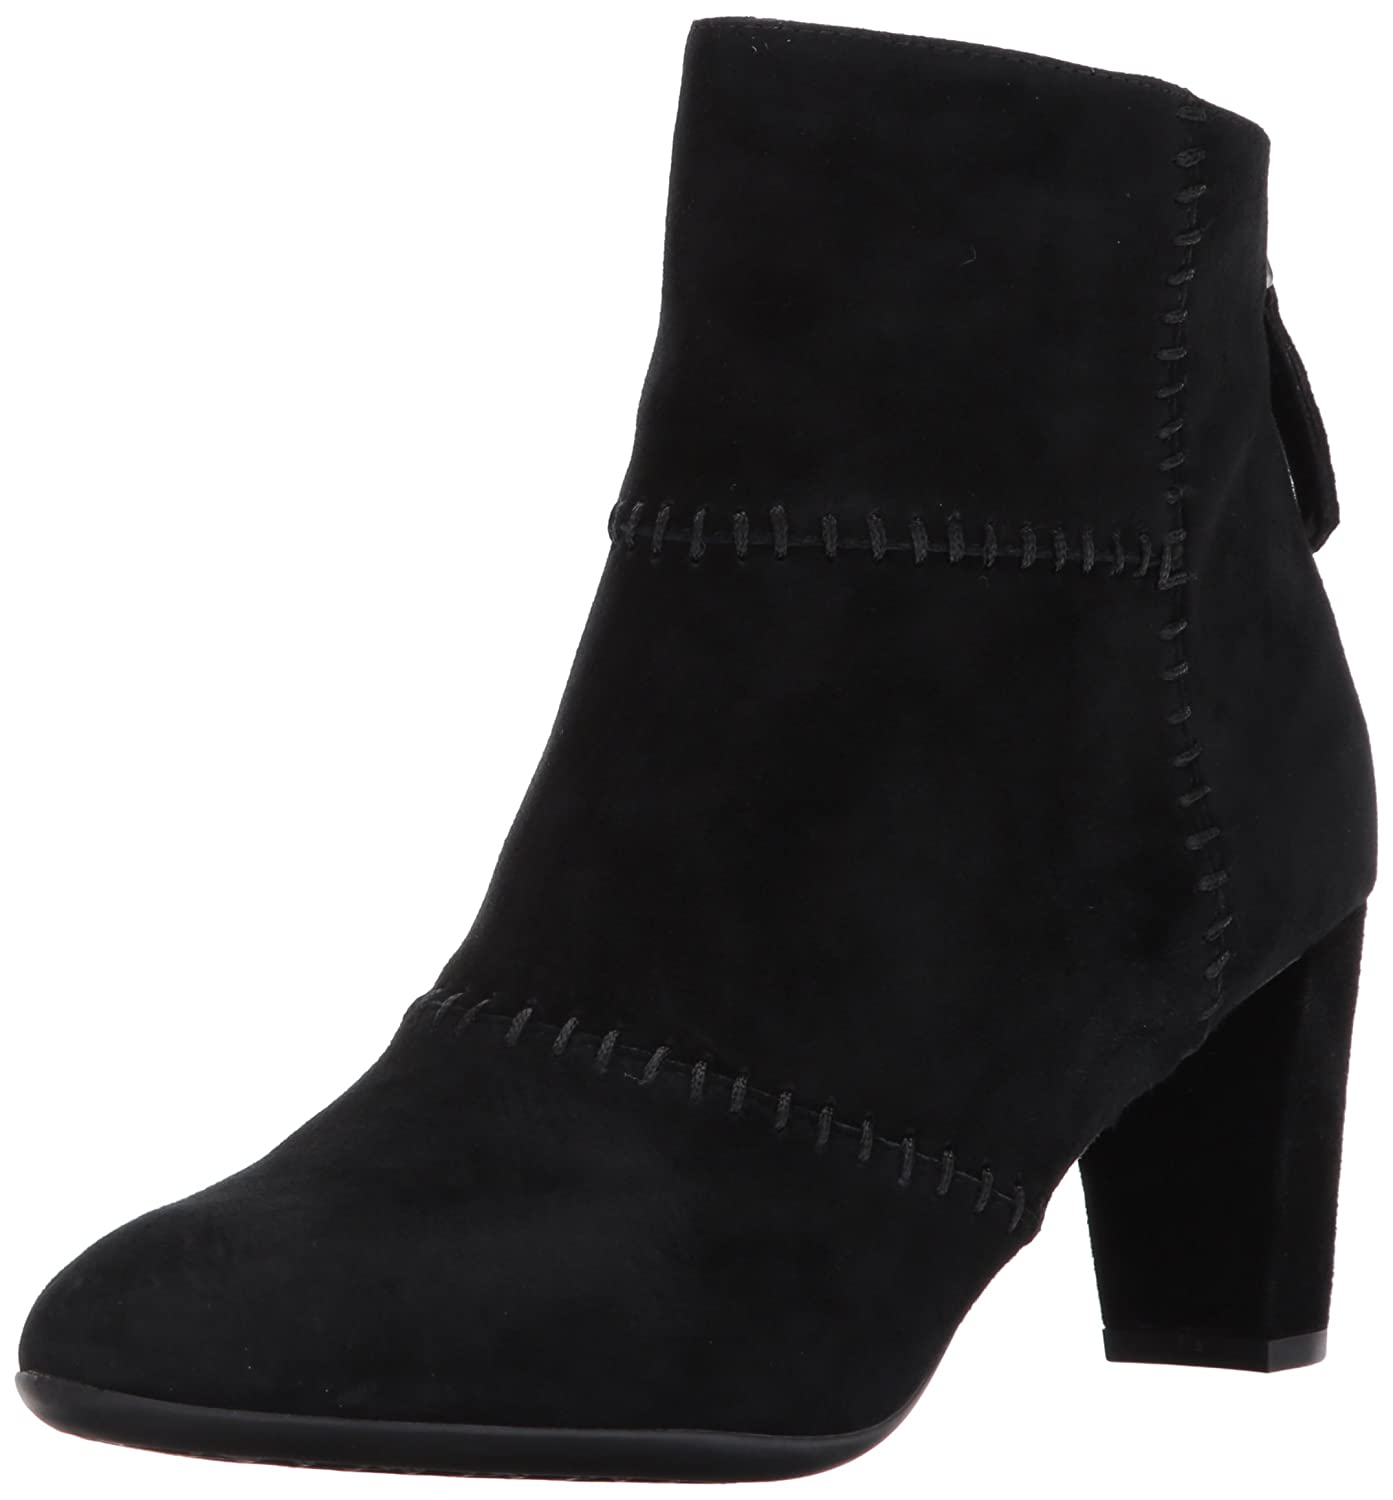 Aerosoles Women's First Ave Ankle Boot B06Y62M9YW 9 B(M) US|Black Suede